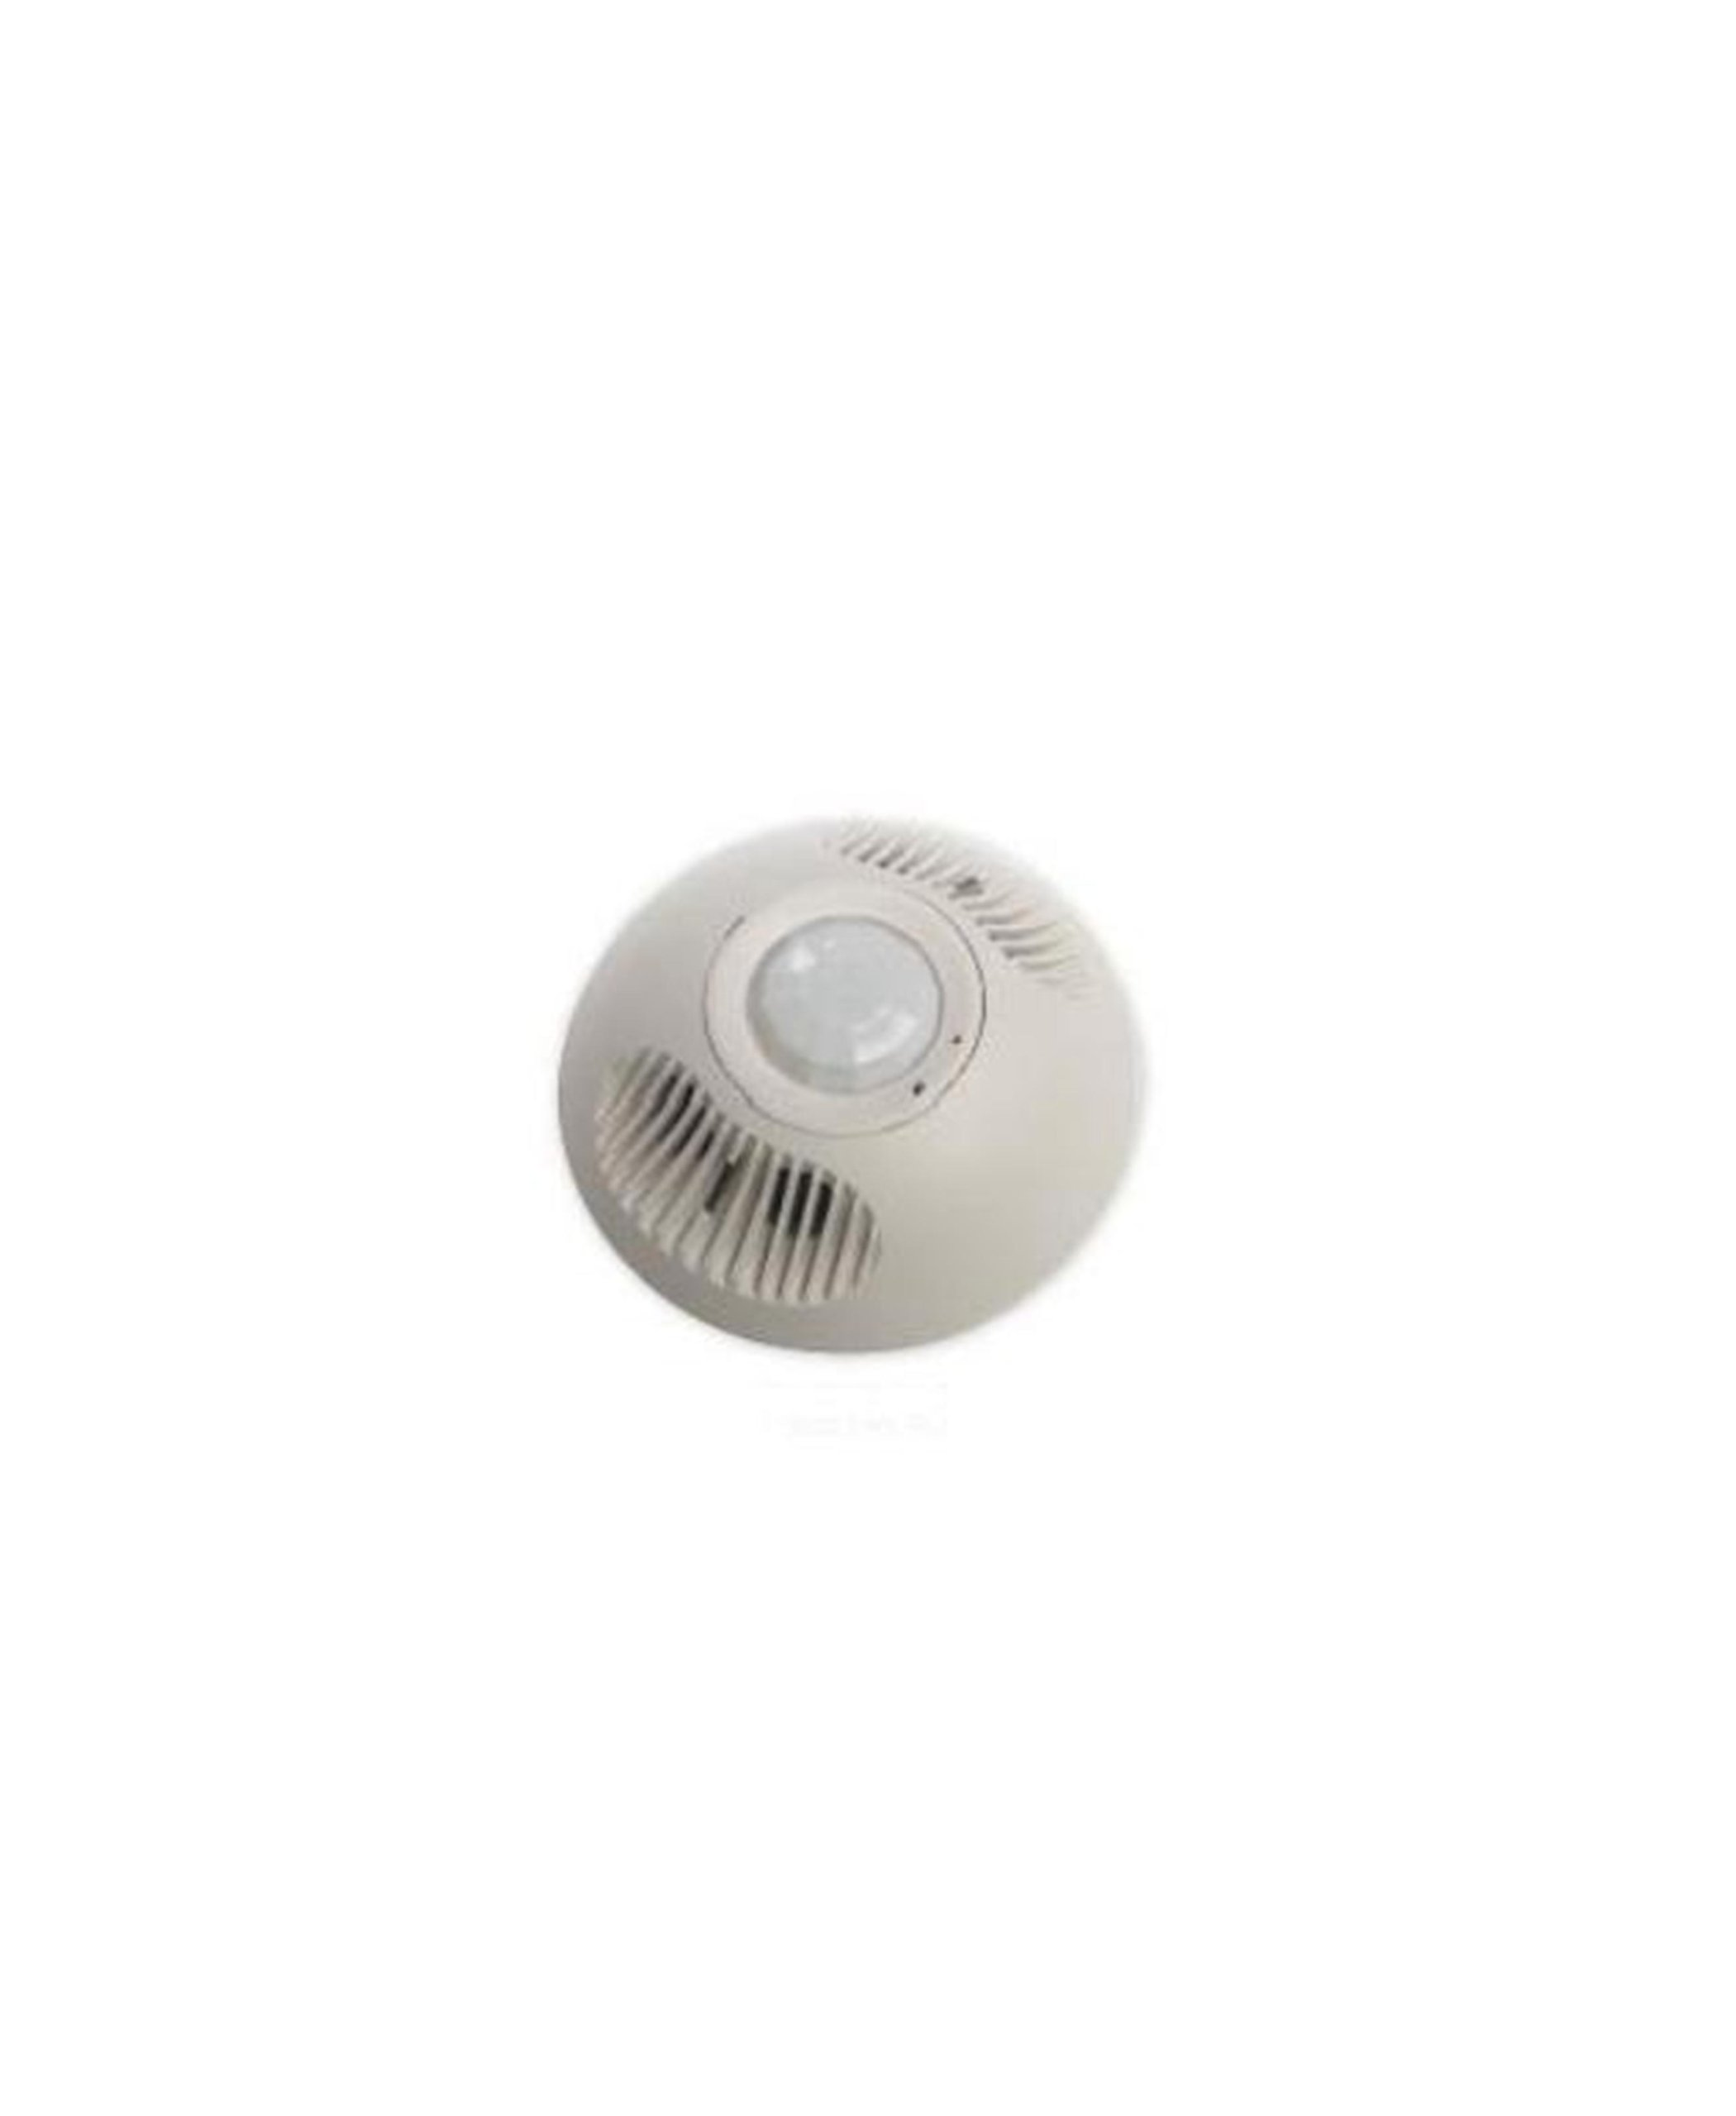 Hubbell Building Automation OMNIDT2000 Digital Passive Infrared and Ultrasonic Ceiling Occupancy Sensor, 2000-Square-foot Range